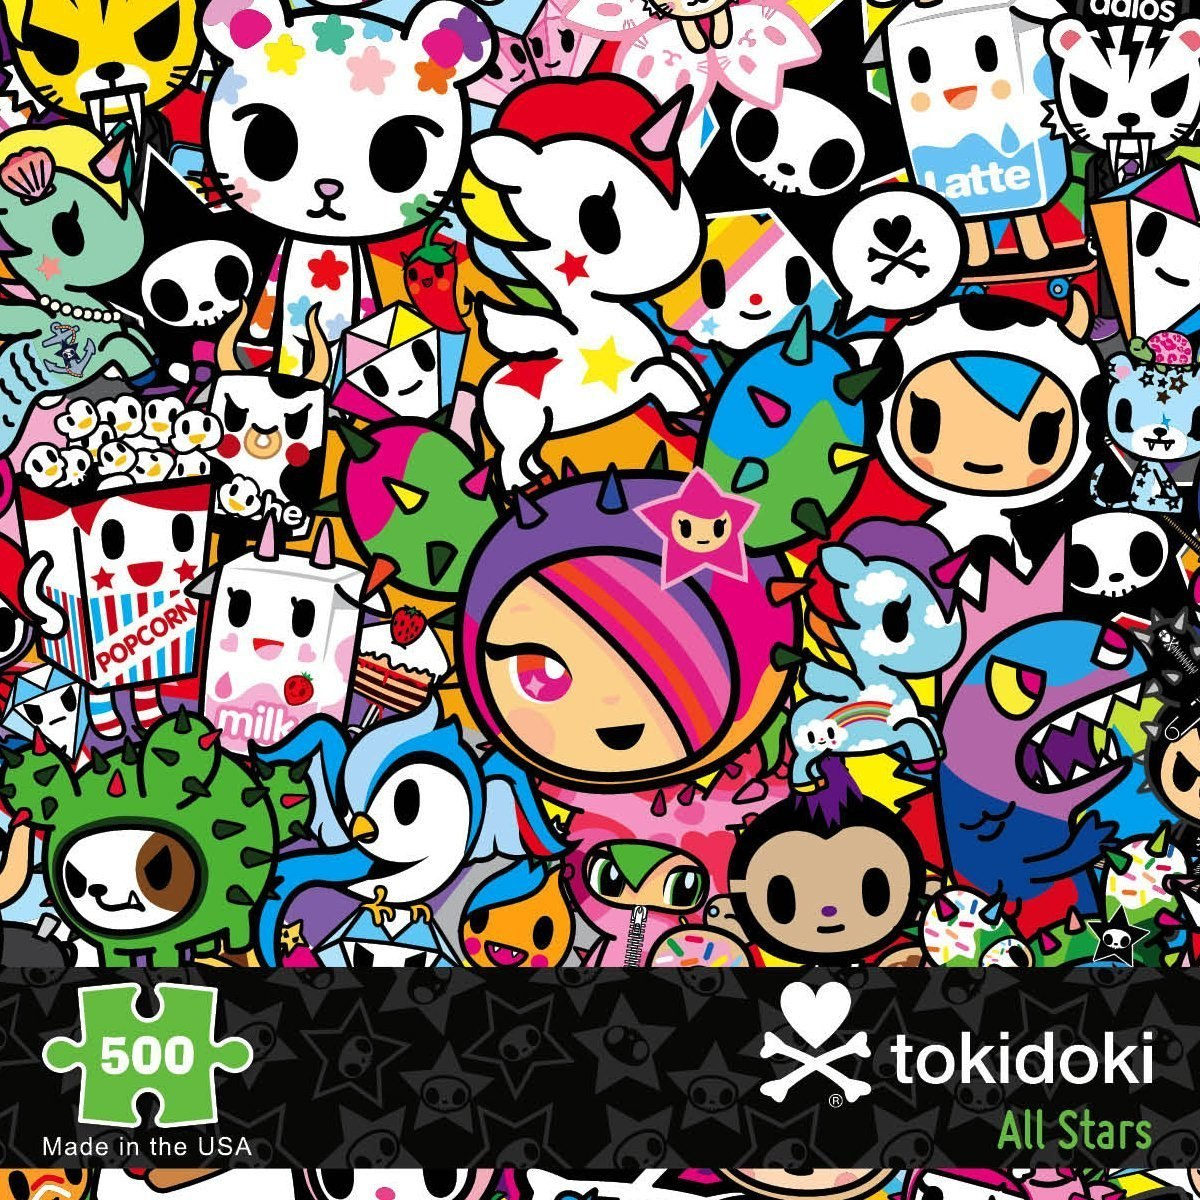 Tokidoki All-Stars - 500pc Jigsaw Puzzle By Re-marks  			  					NEW